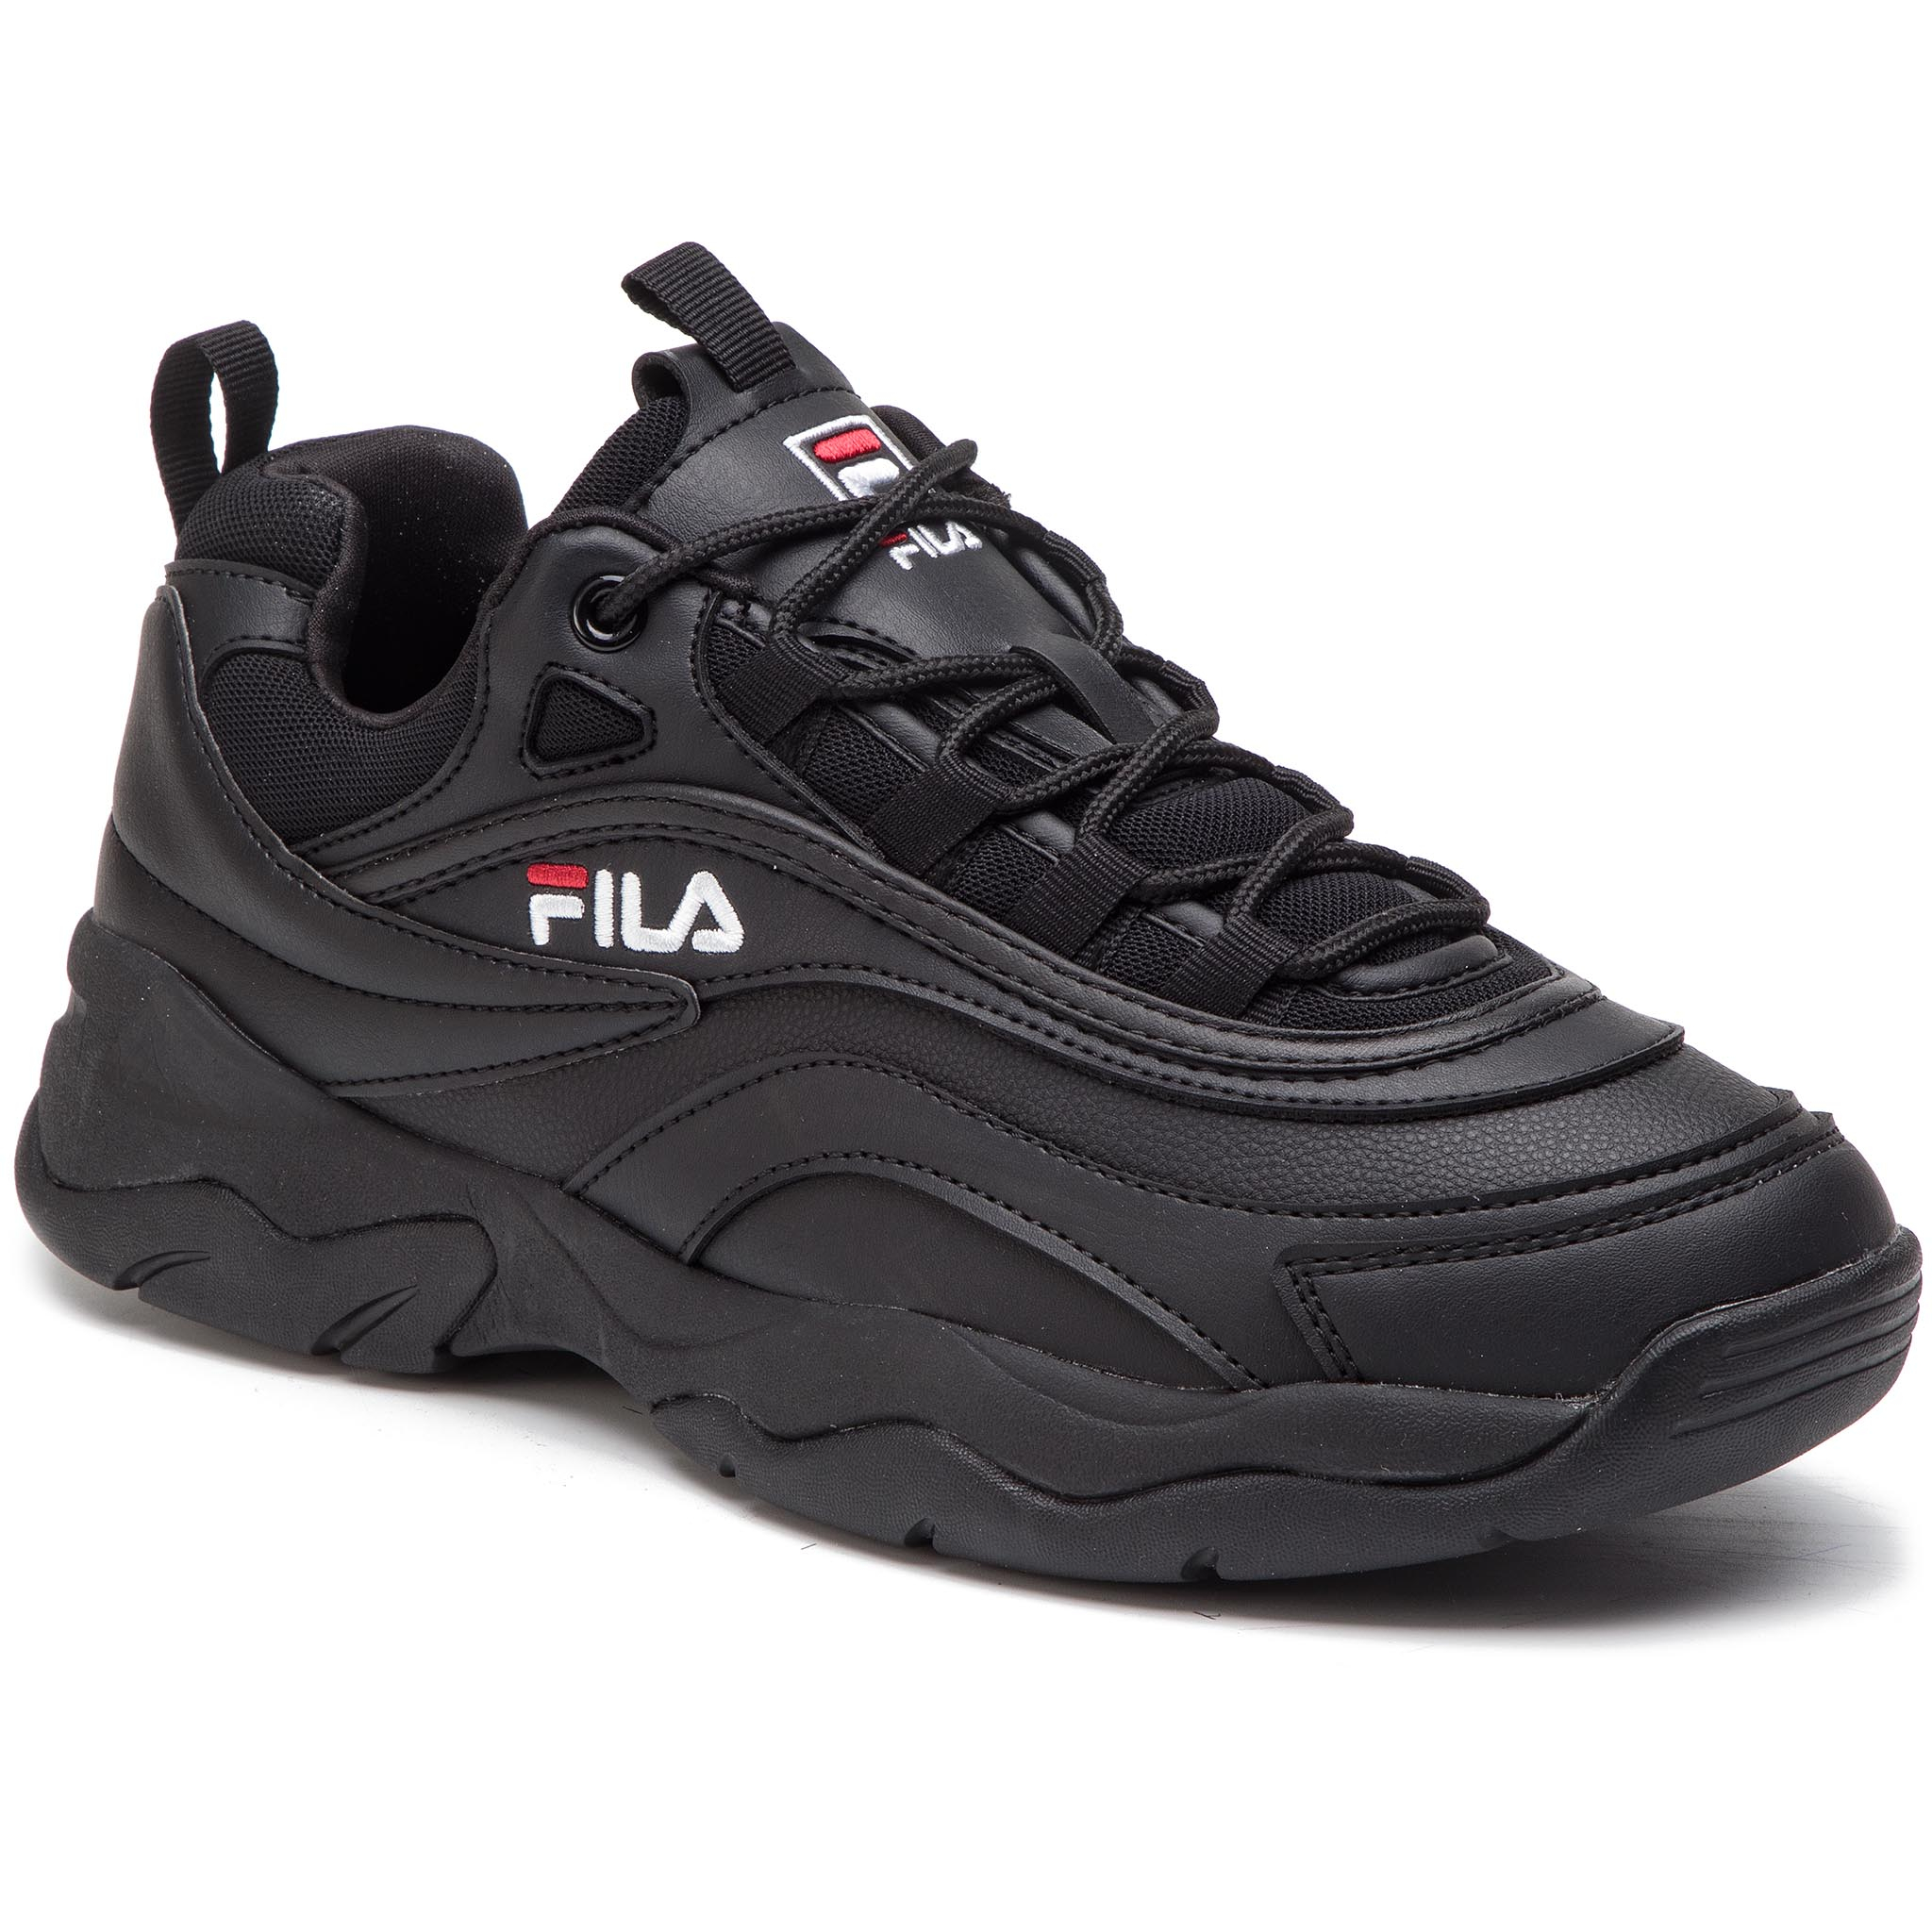 Sneakers Fila - Ray Low 1010561.12v Black/Black imagine